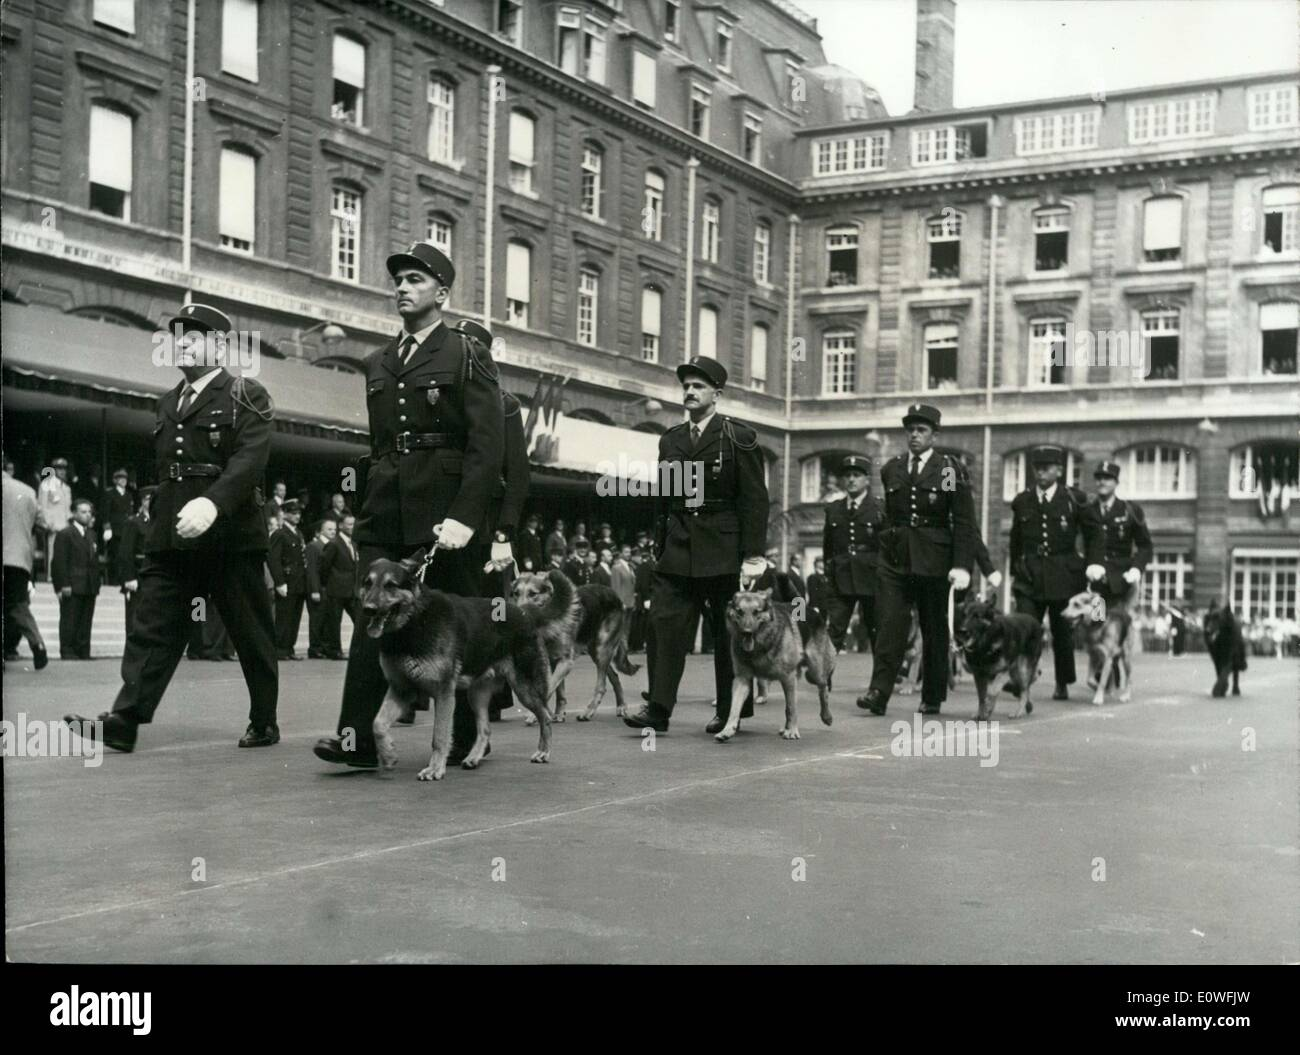 Aug. 20, 1962 - Police March in Parade 8th Anniversary of Liberation of Paris APRESS.c - Stock Image